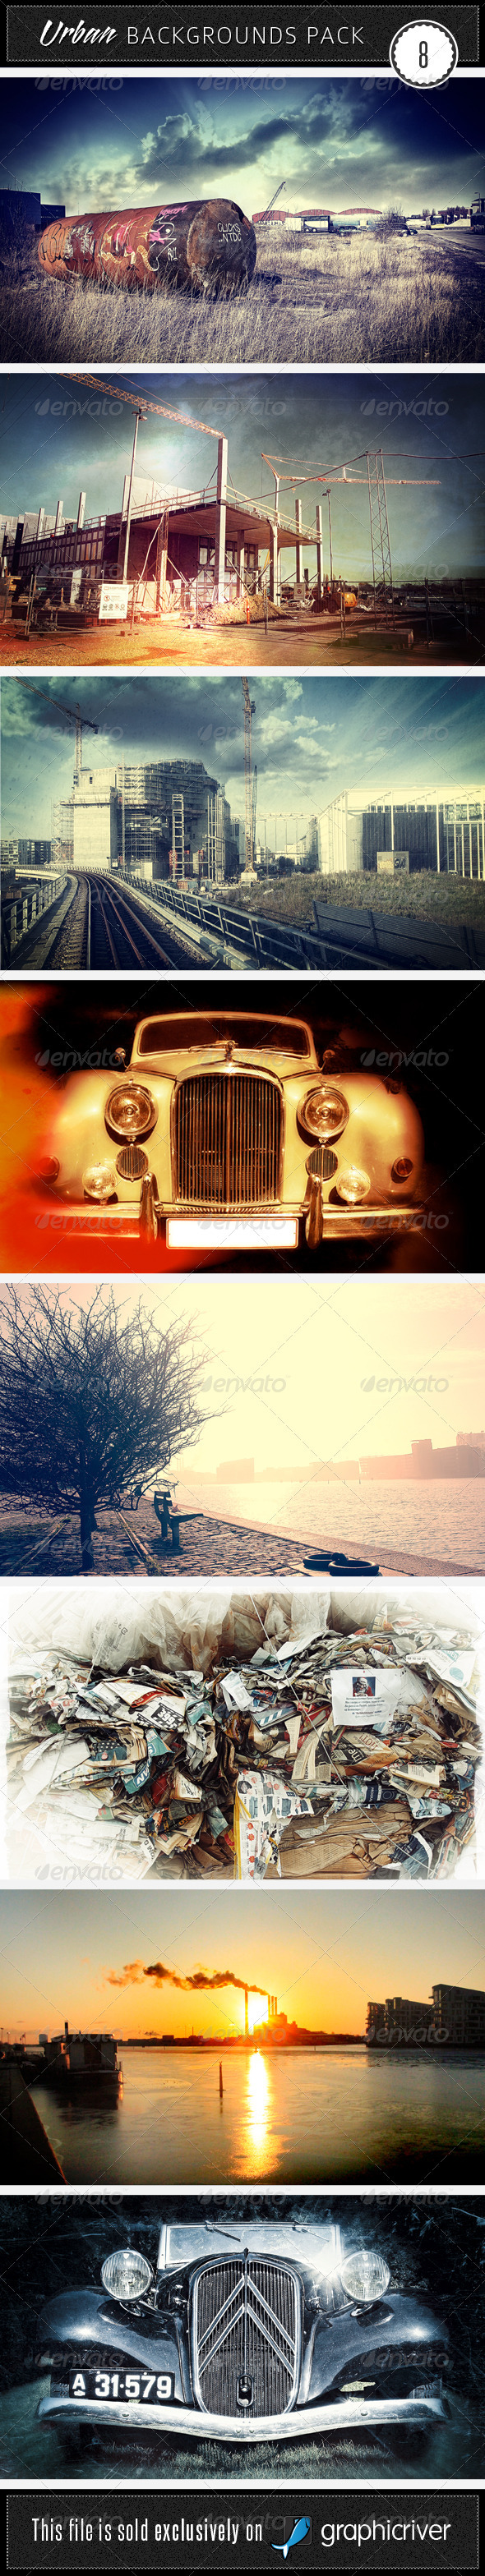 GraphicRiver Urban Backgrounds Pack 8 2367743